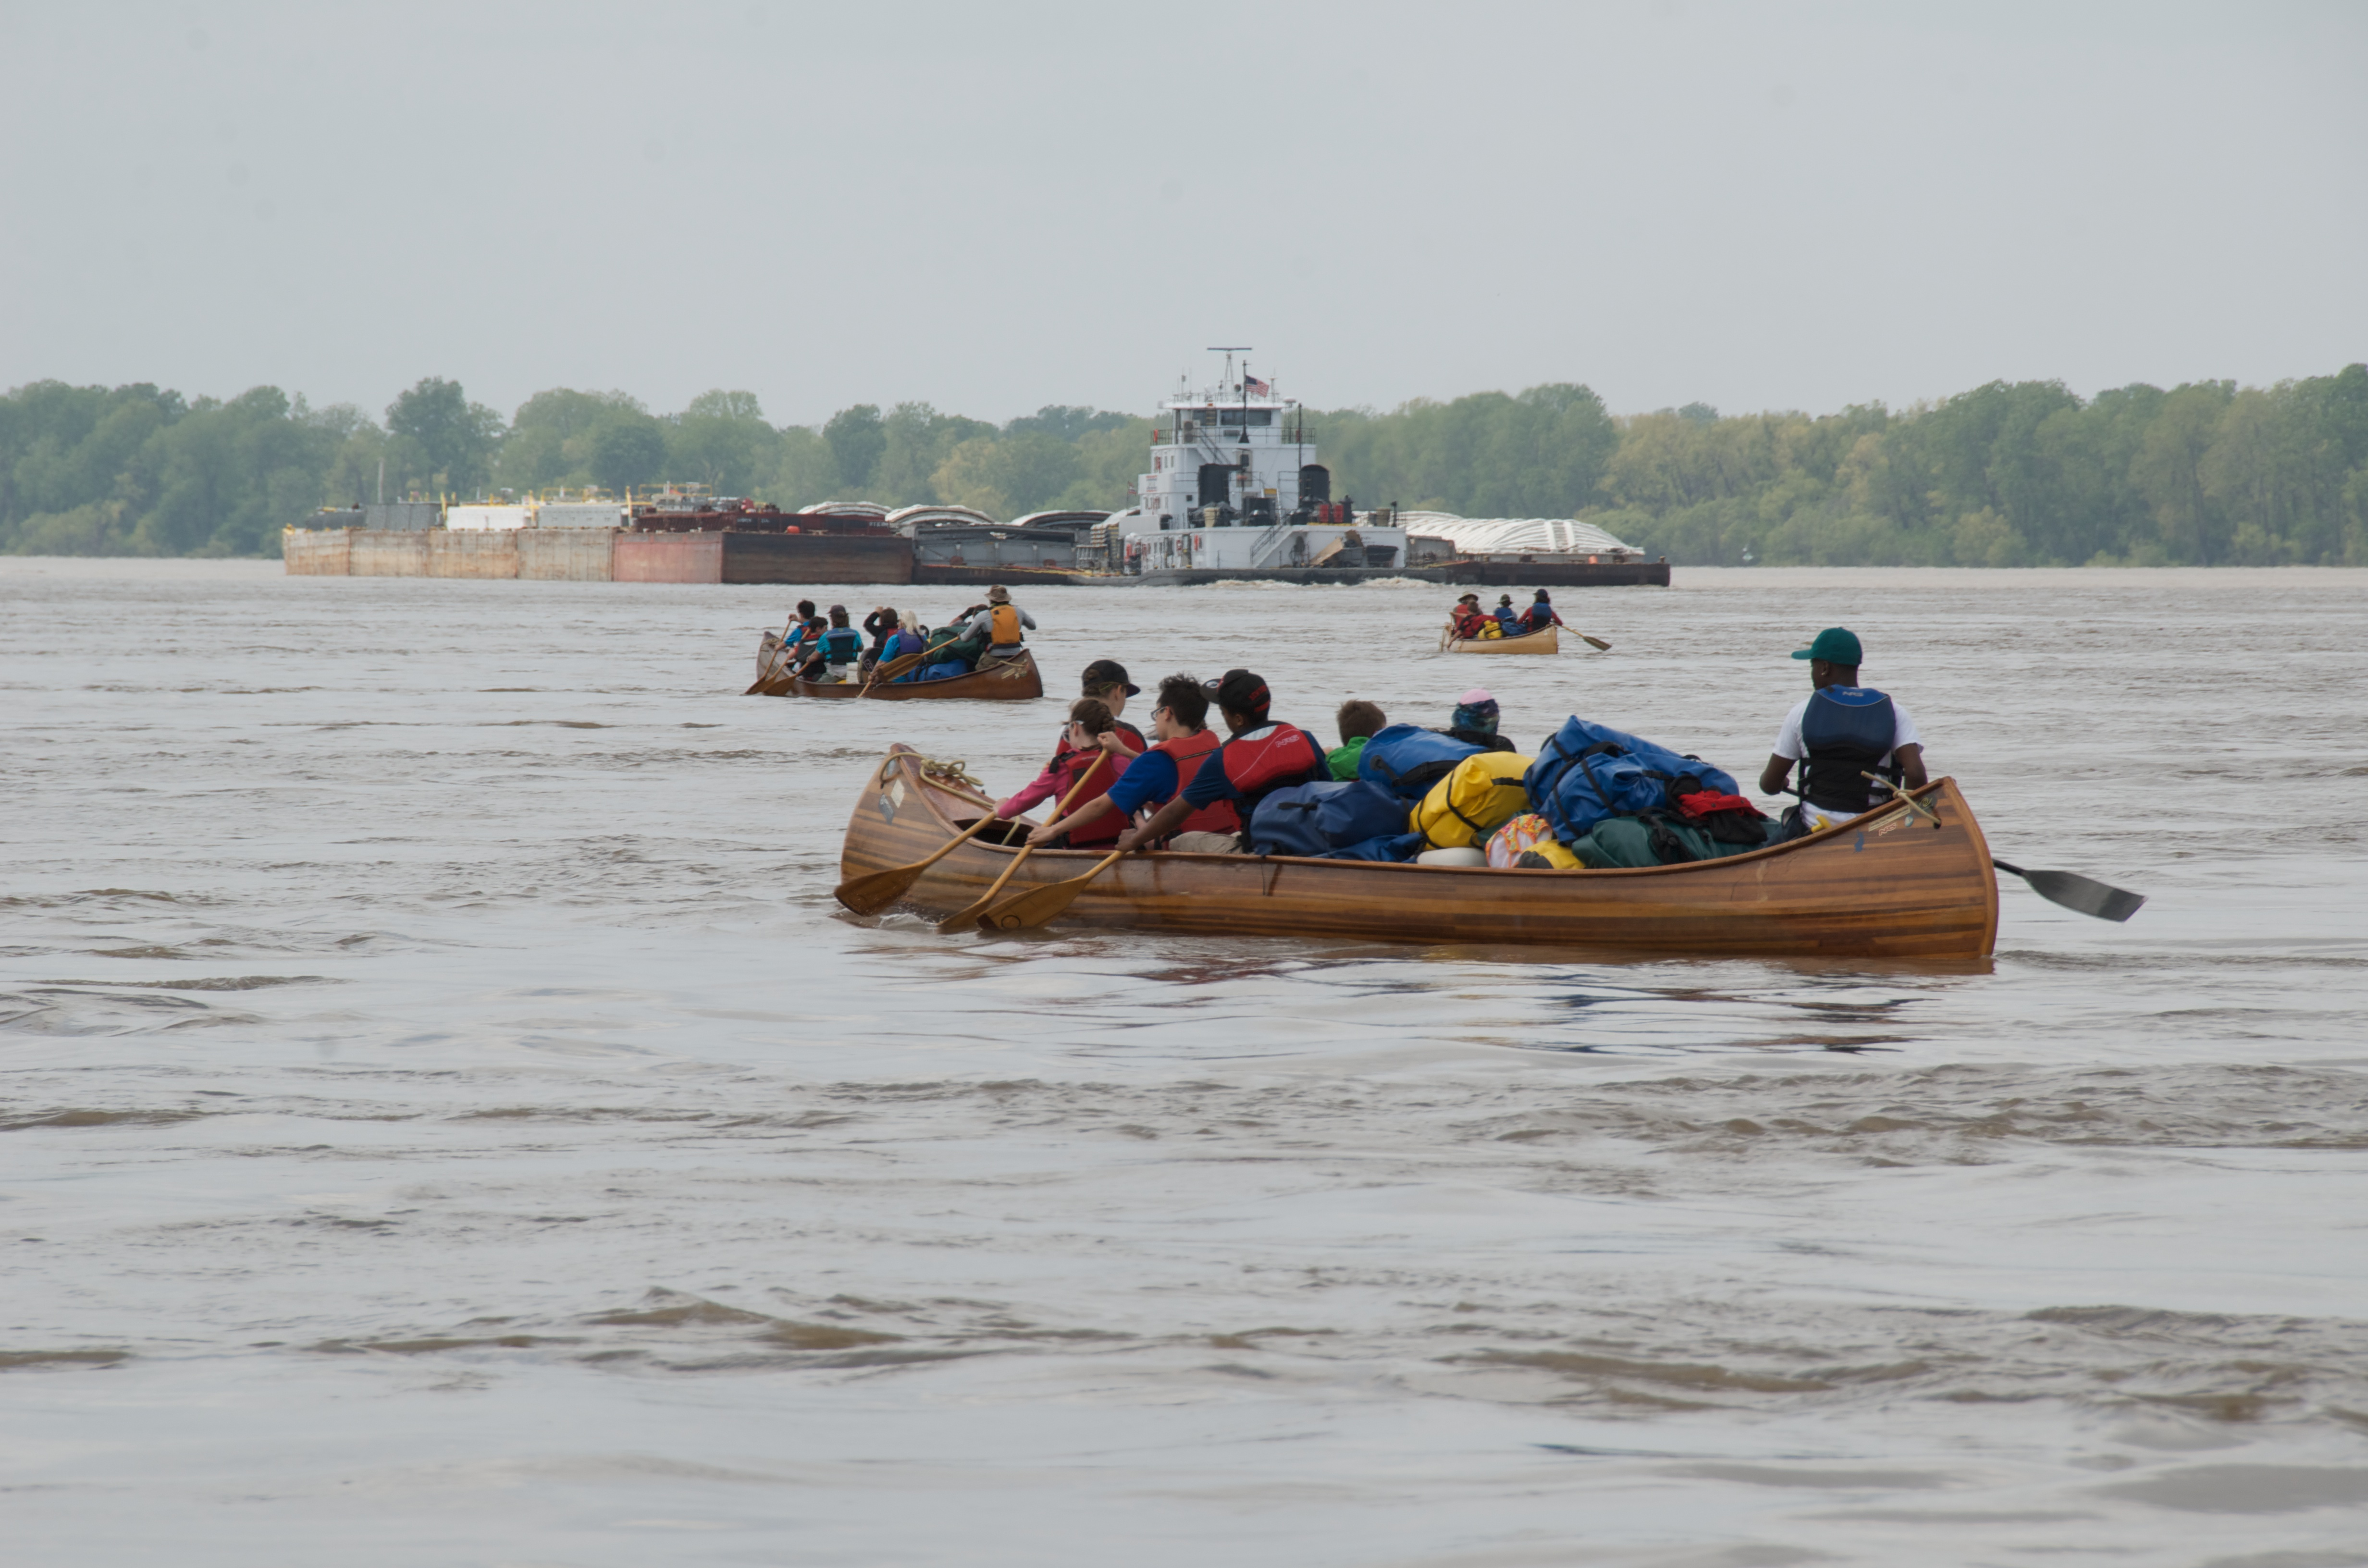 Sharing the waters. Three canoes appear on the river, with a much larger barge appearing in the distance.